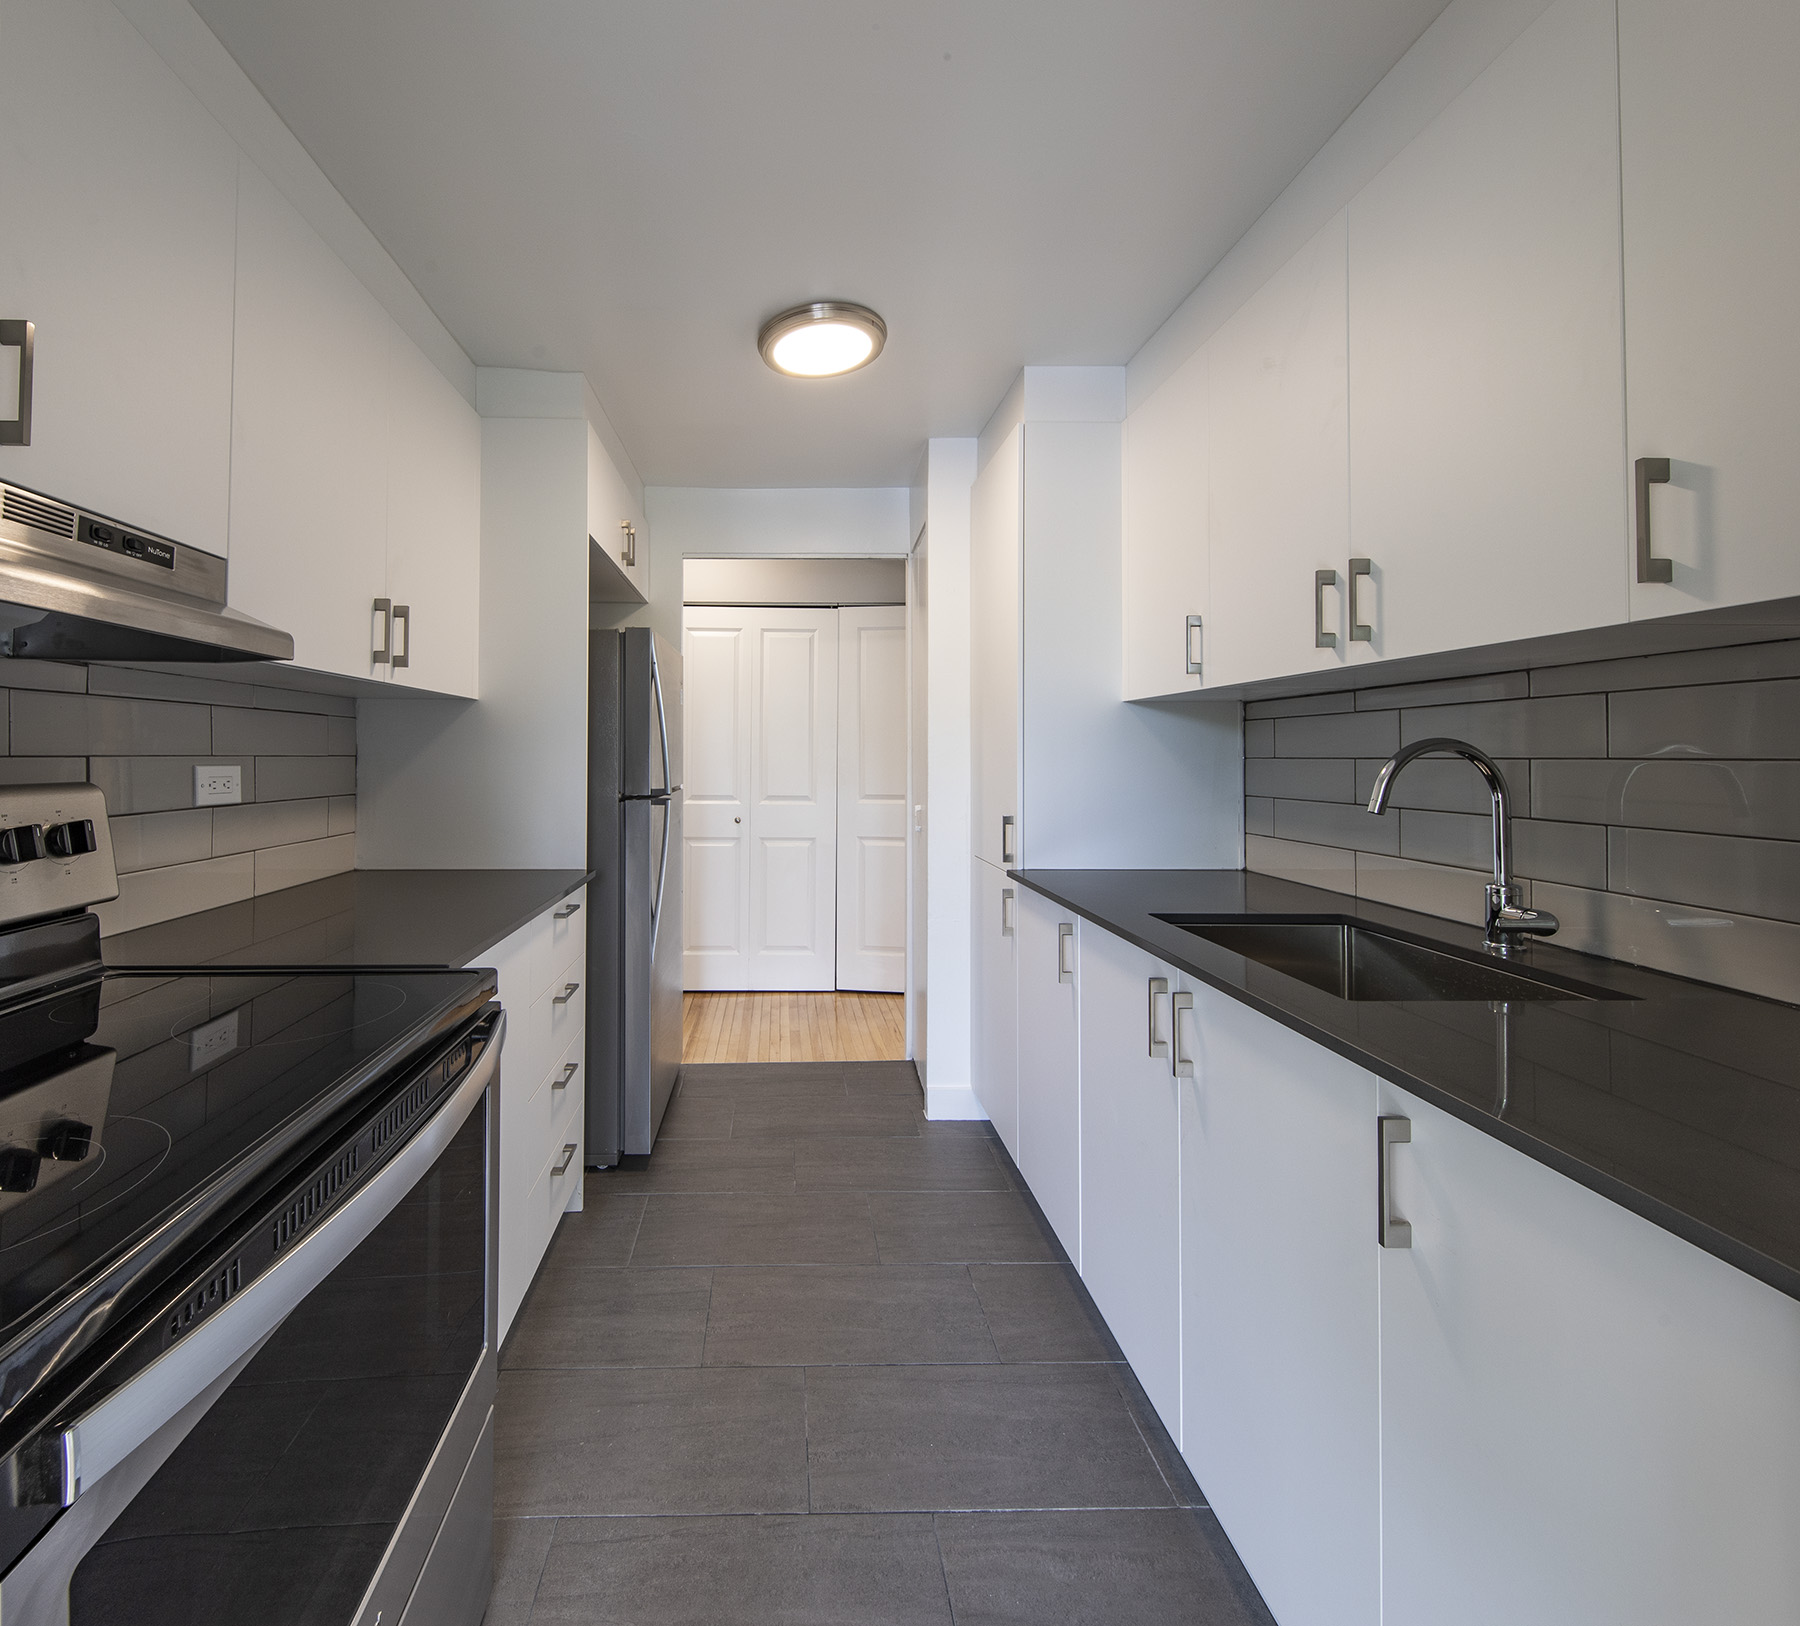 2 bedroom Apartments for rent in Cote-St-Luc at 5765 Cote St-Luc - Photo 03 - RentQuebecApartments – L401533